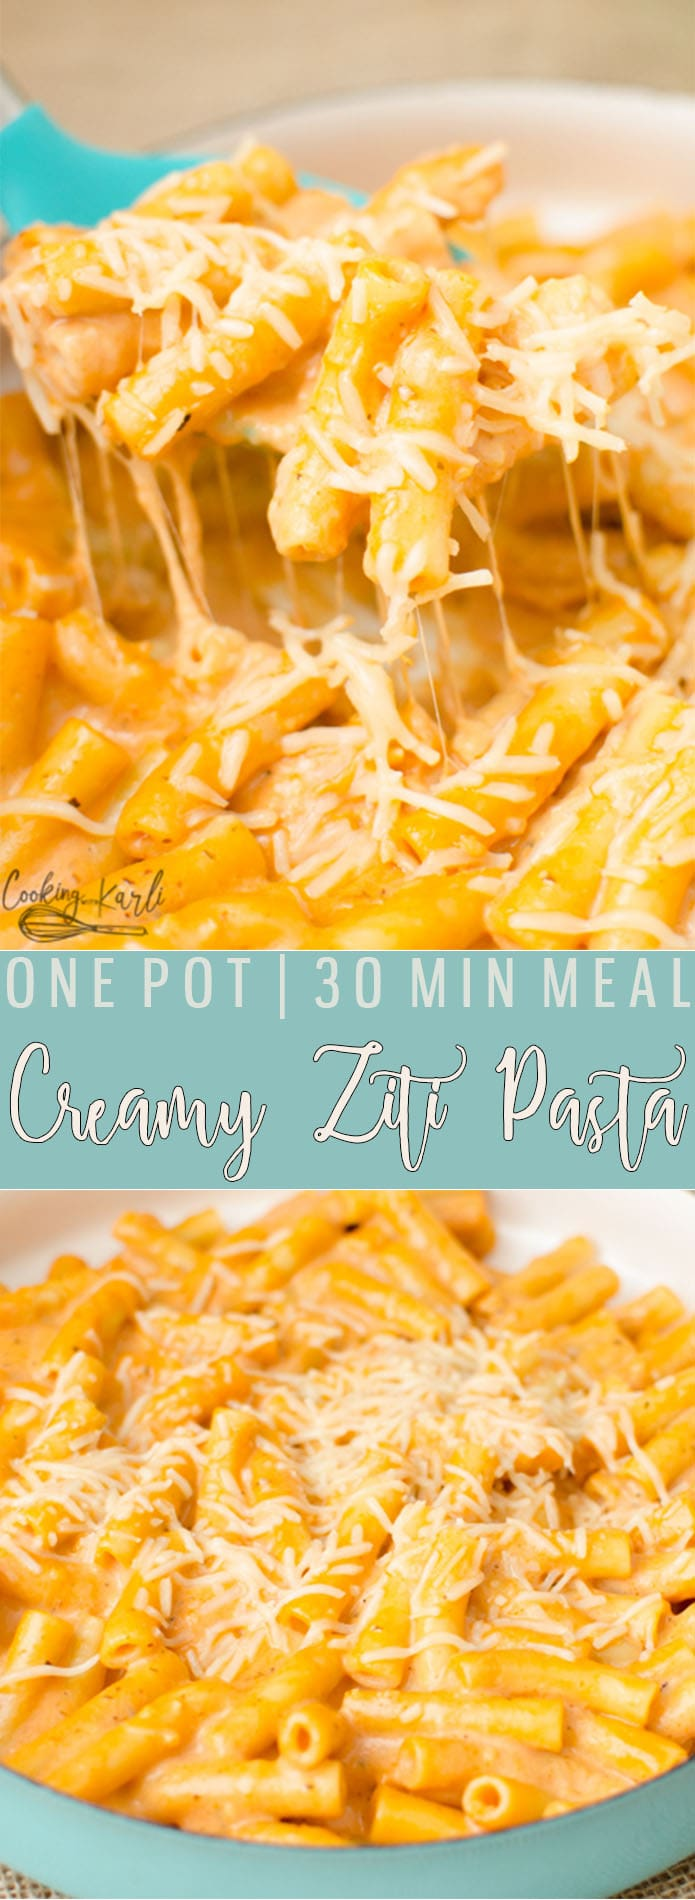 One Pot Creamy Ziti Pasta tastes even better than Ziti dishes you'd order from a restaurant! This One Pot meal is a fast, easy, dump and go dinner that won't leave you with a sink full of dishes! All it takes is a handful of ingredients to create this Pasta dish.  Cooking with Karli  #zitibake #copycat #olivegarden #creamyziti #onepot #30minmeal #fast #easy